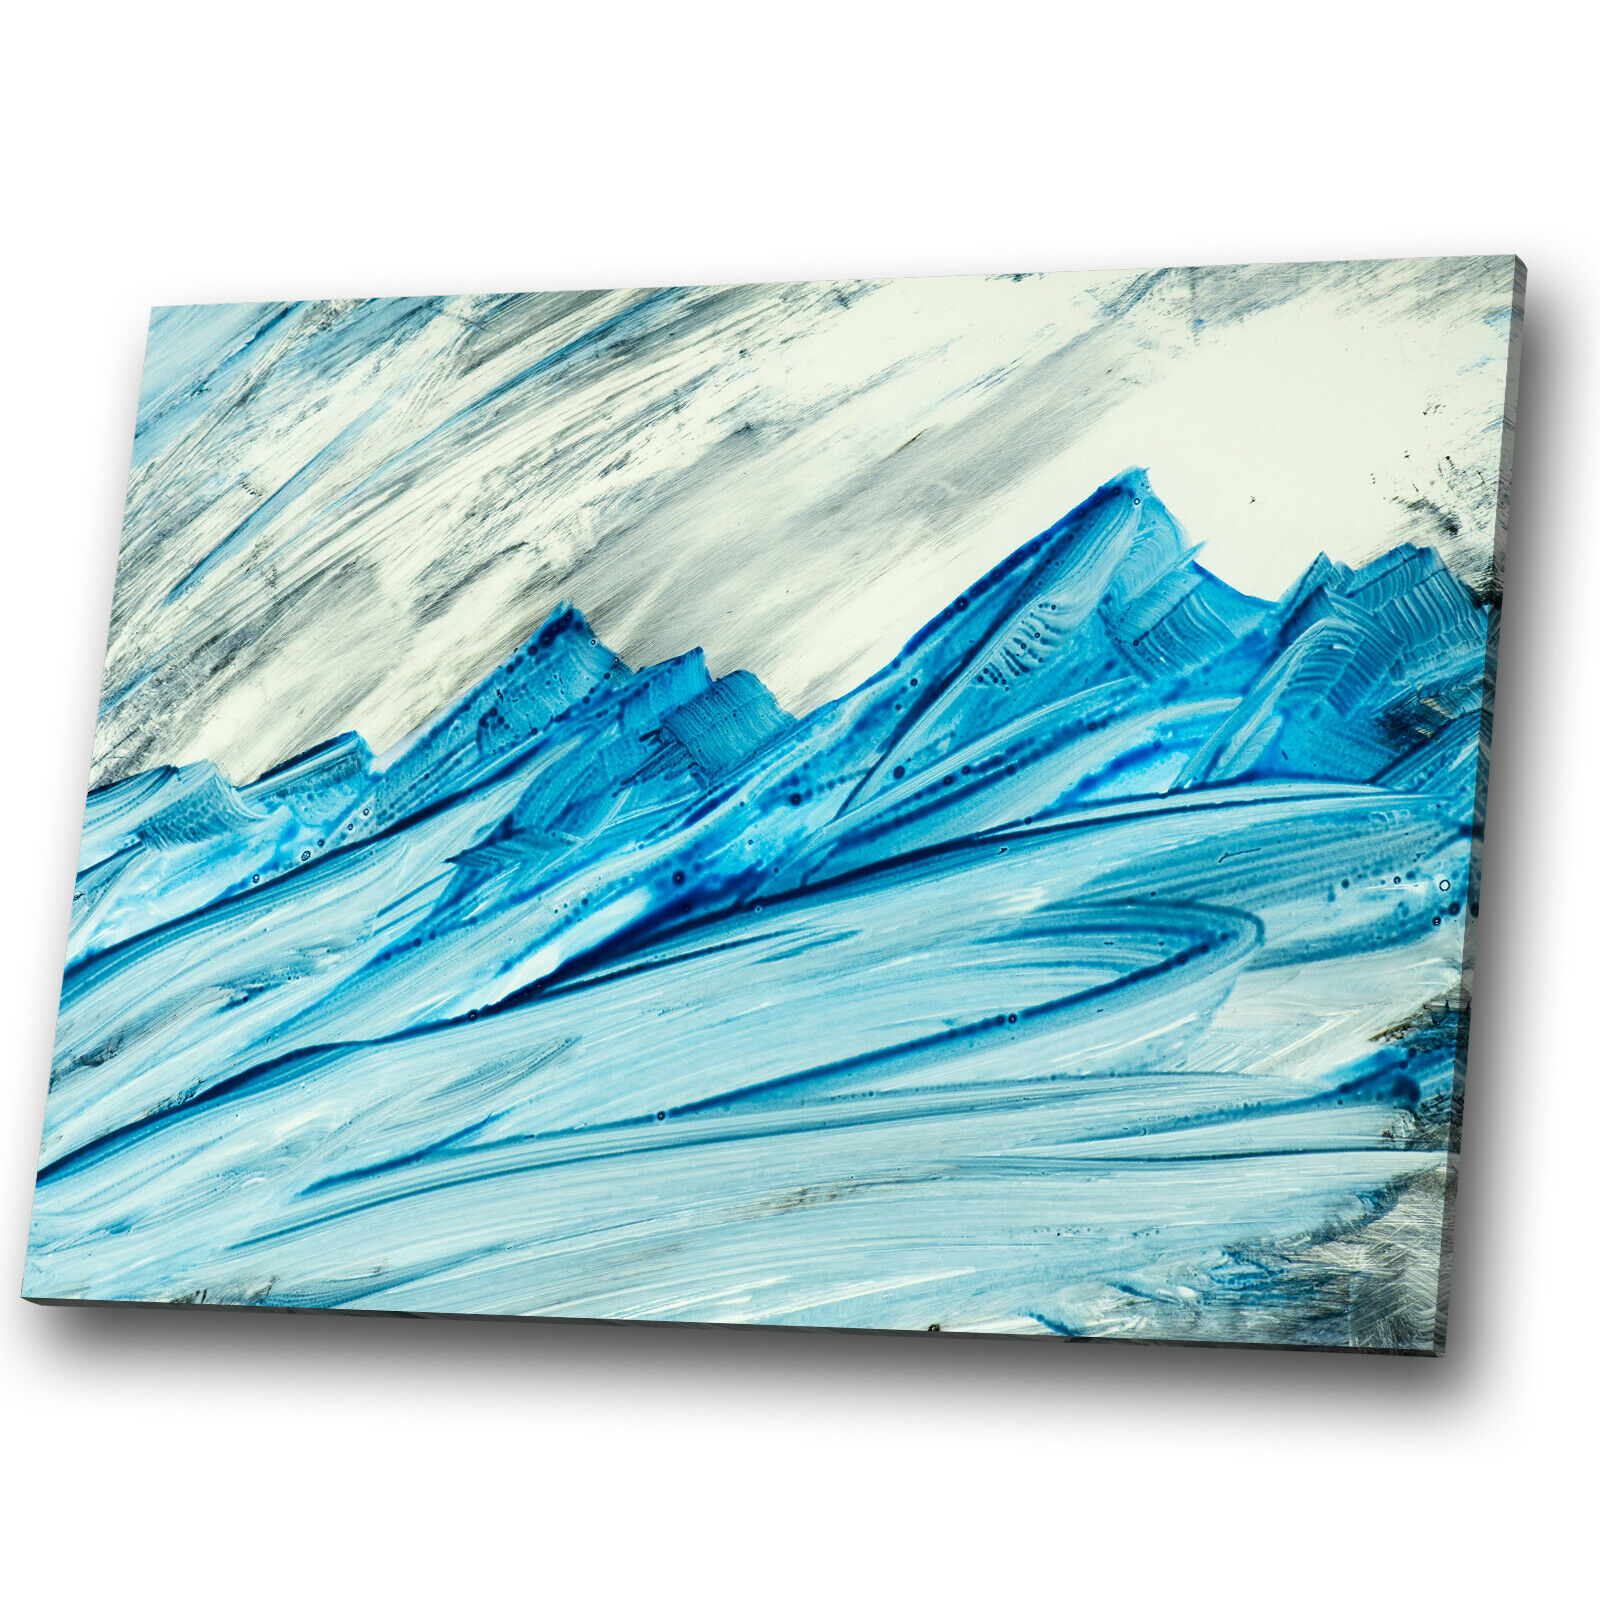 Blau Weiß grau Mountains Abstract Canvas Wall Art Large Picture Prints